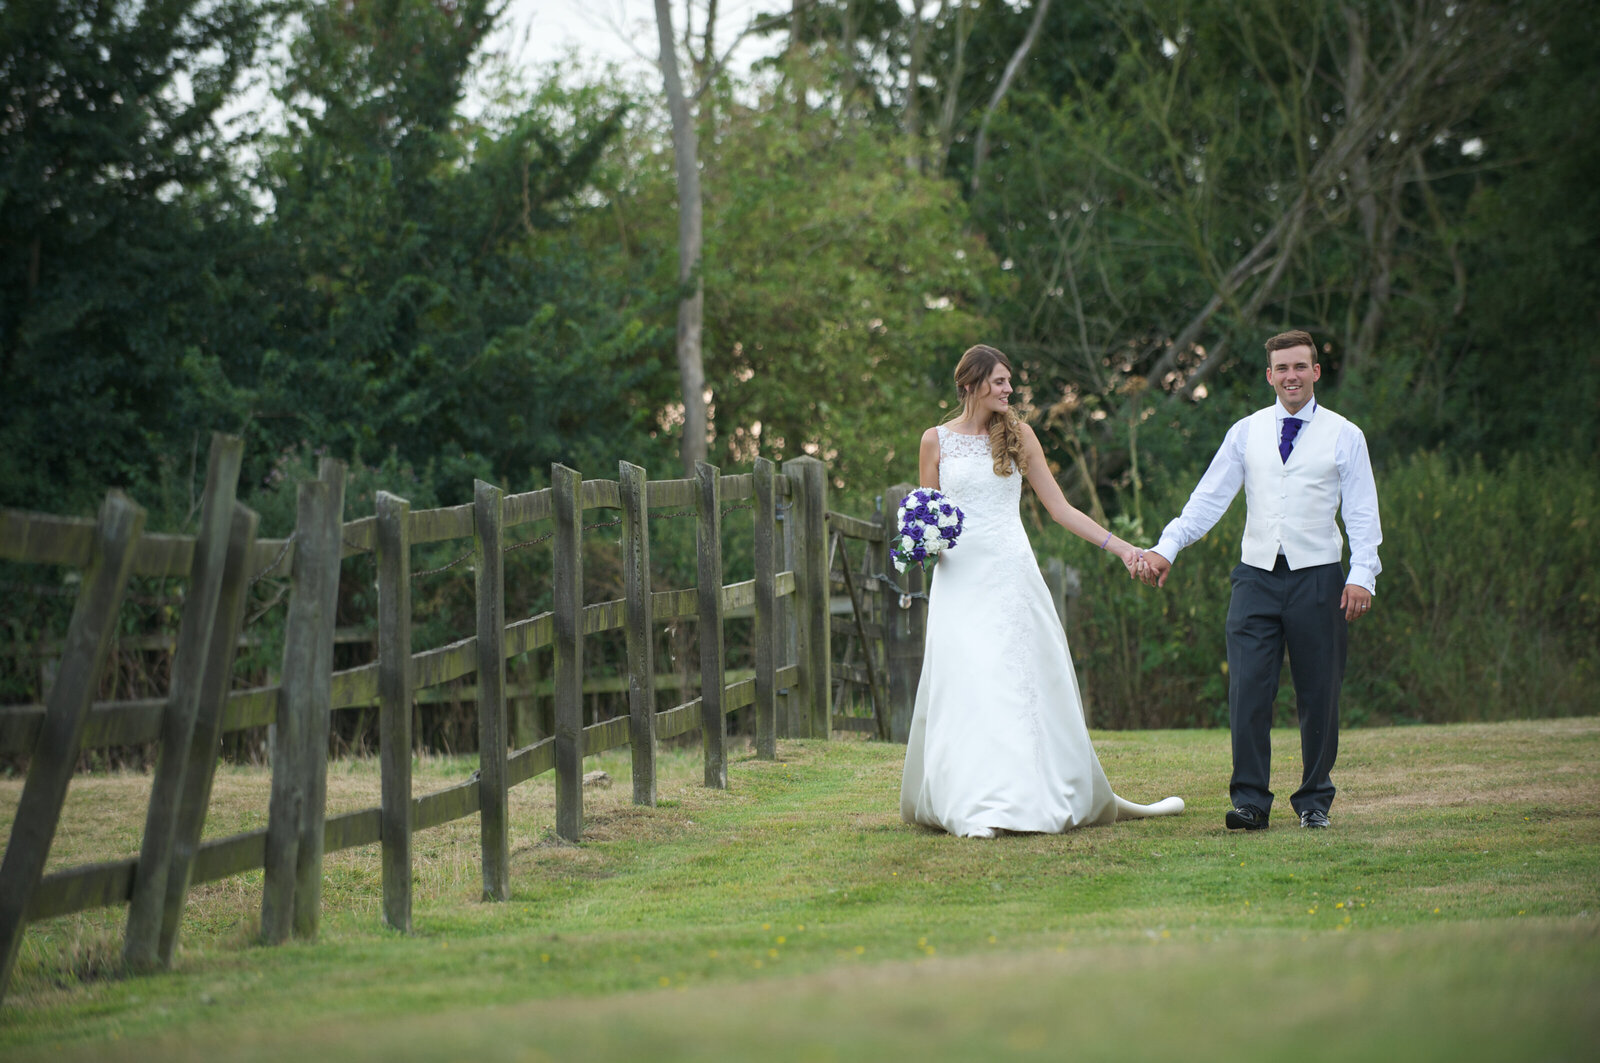 Bride and groom next to old fence